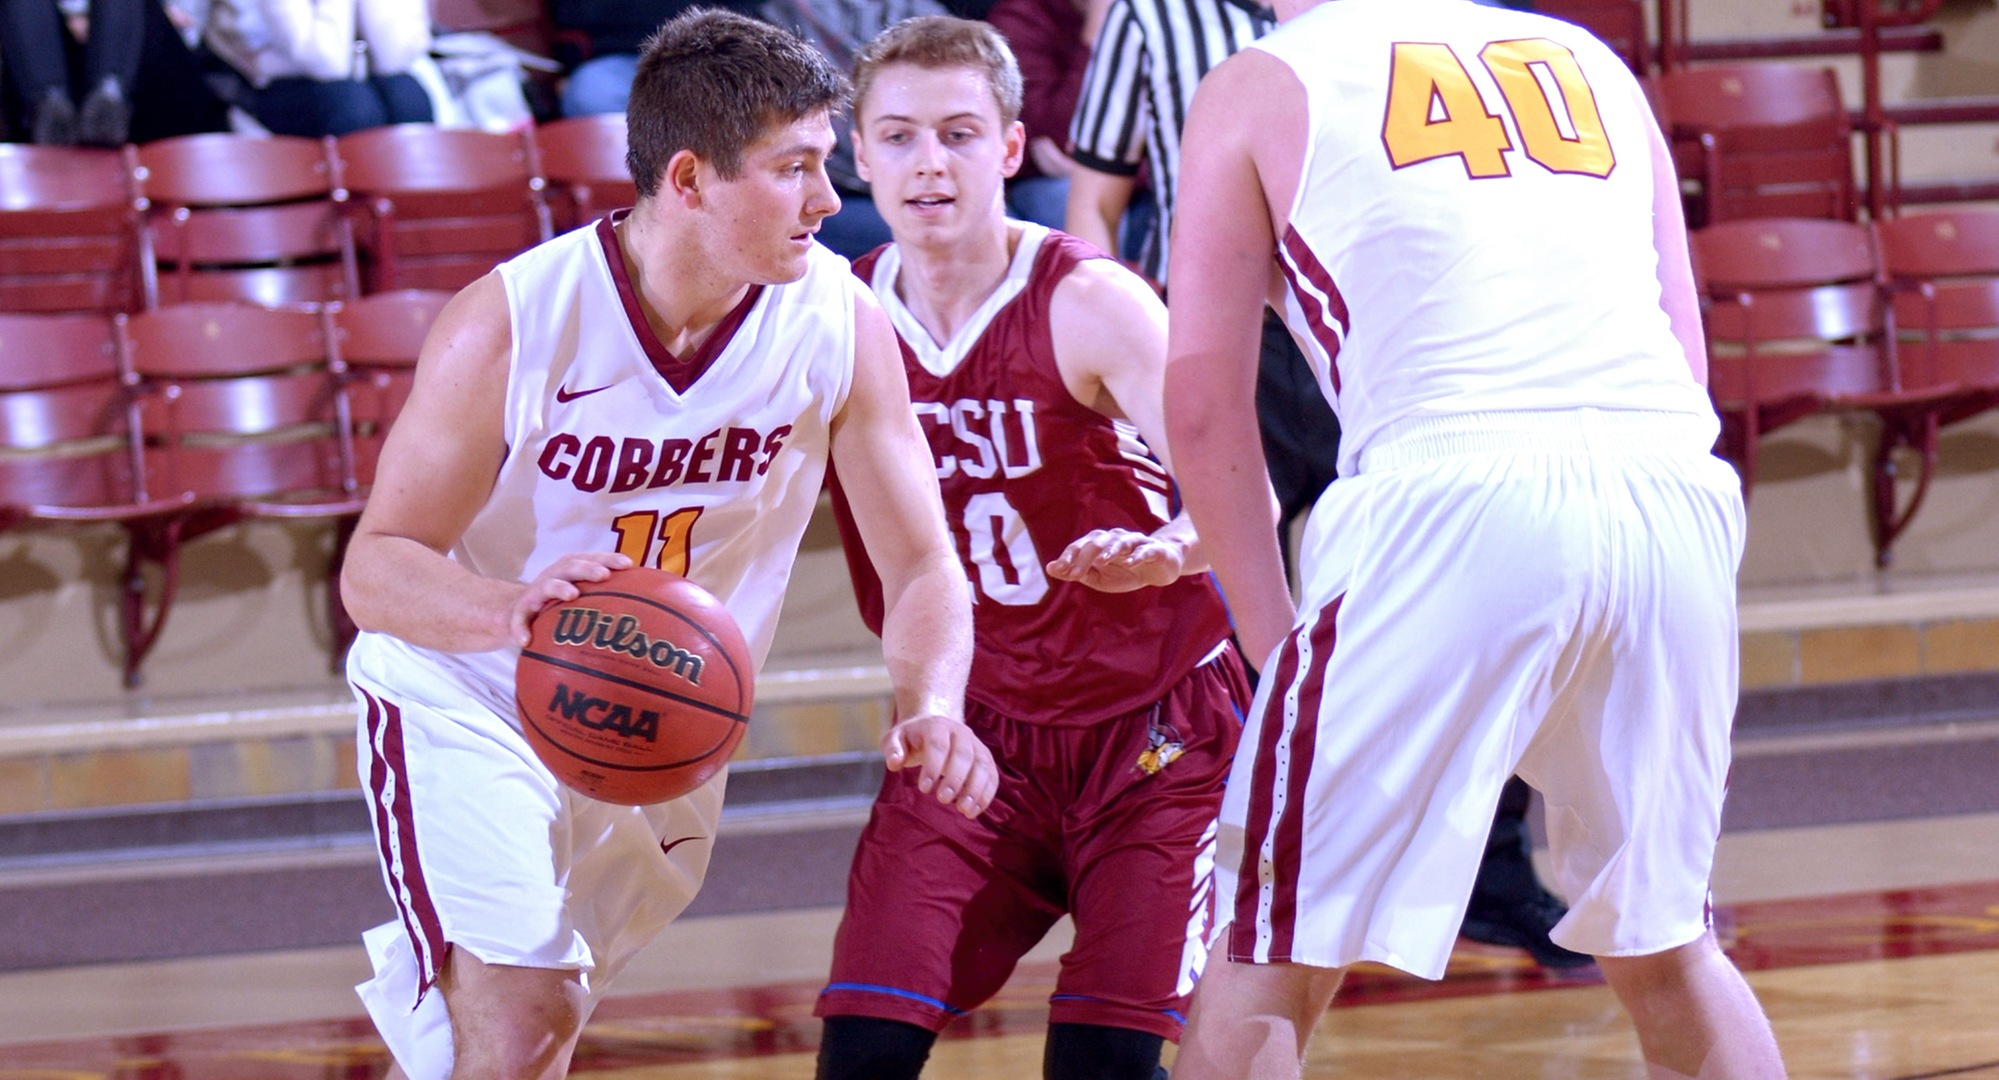 Senior Dylan Alderman drives to the basket in the Cobbers' overtime win against Valley City State. Alderman tied his career high with 27 points.